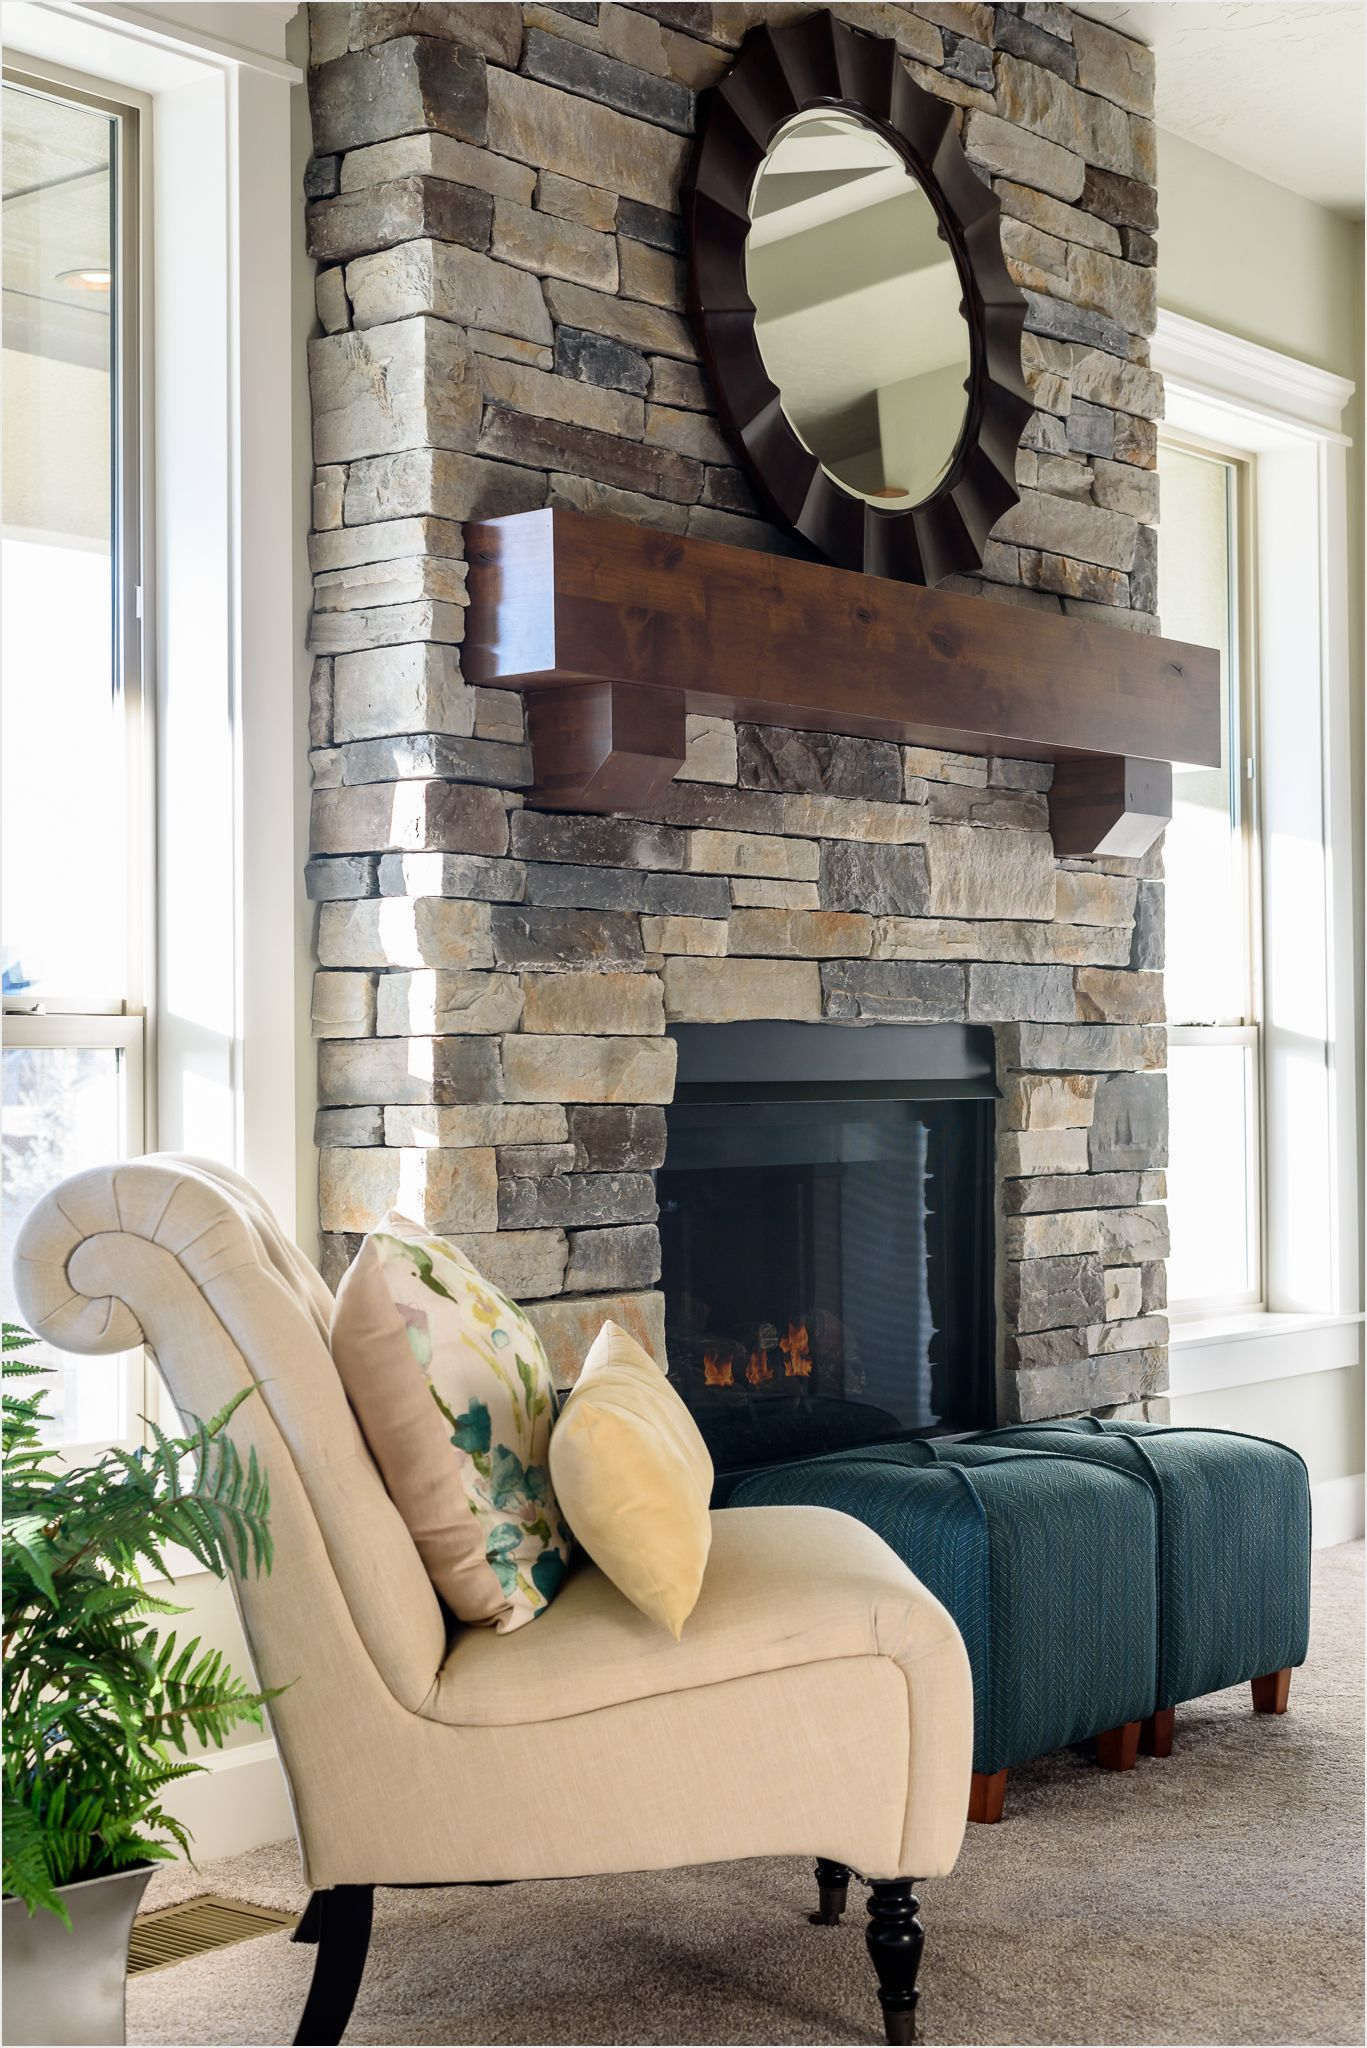 Echo ridge country ledgestone on this floor to ceiling - Floor to ceiling brick fireplace makeover ...